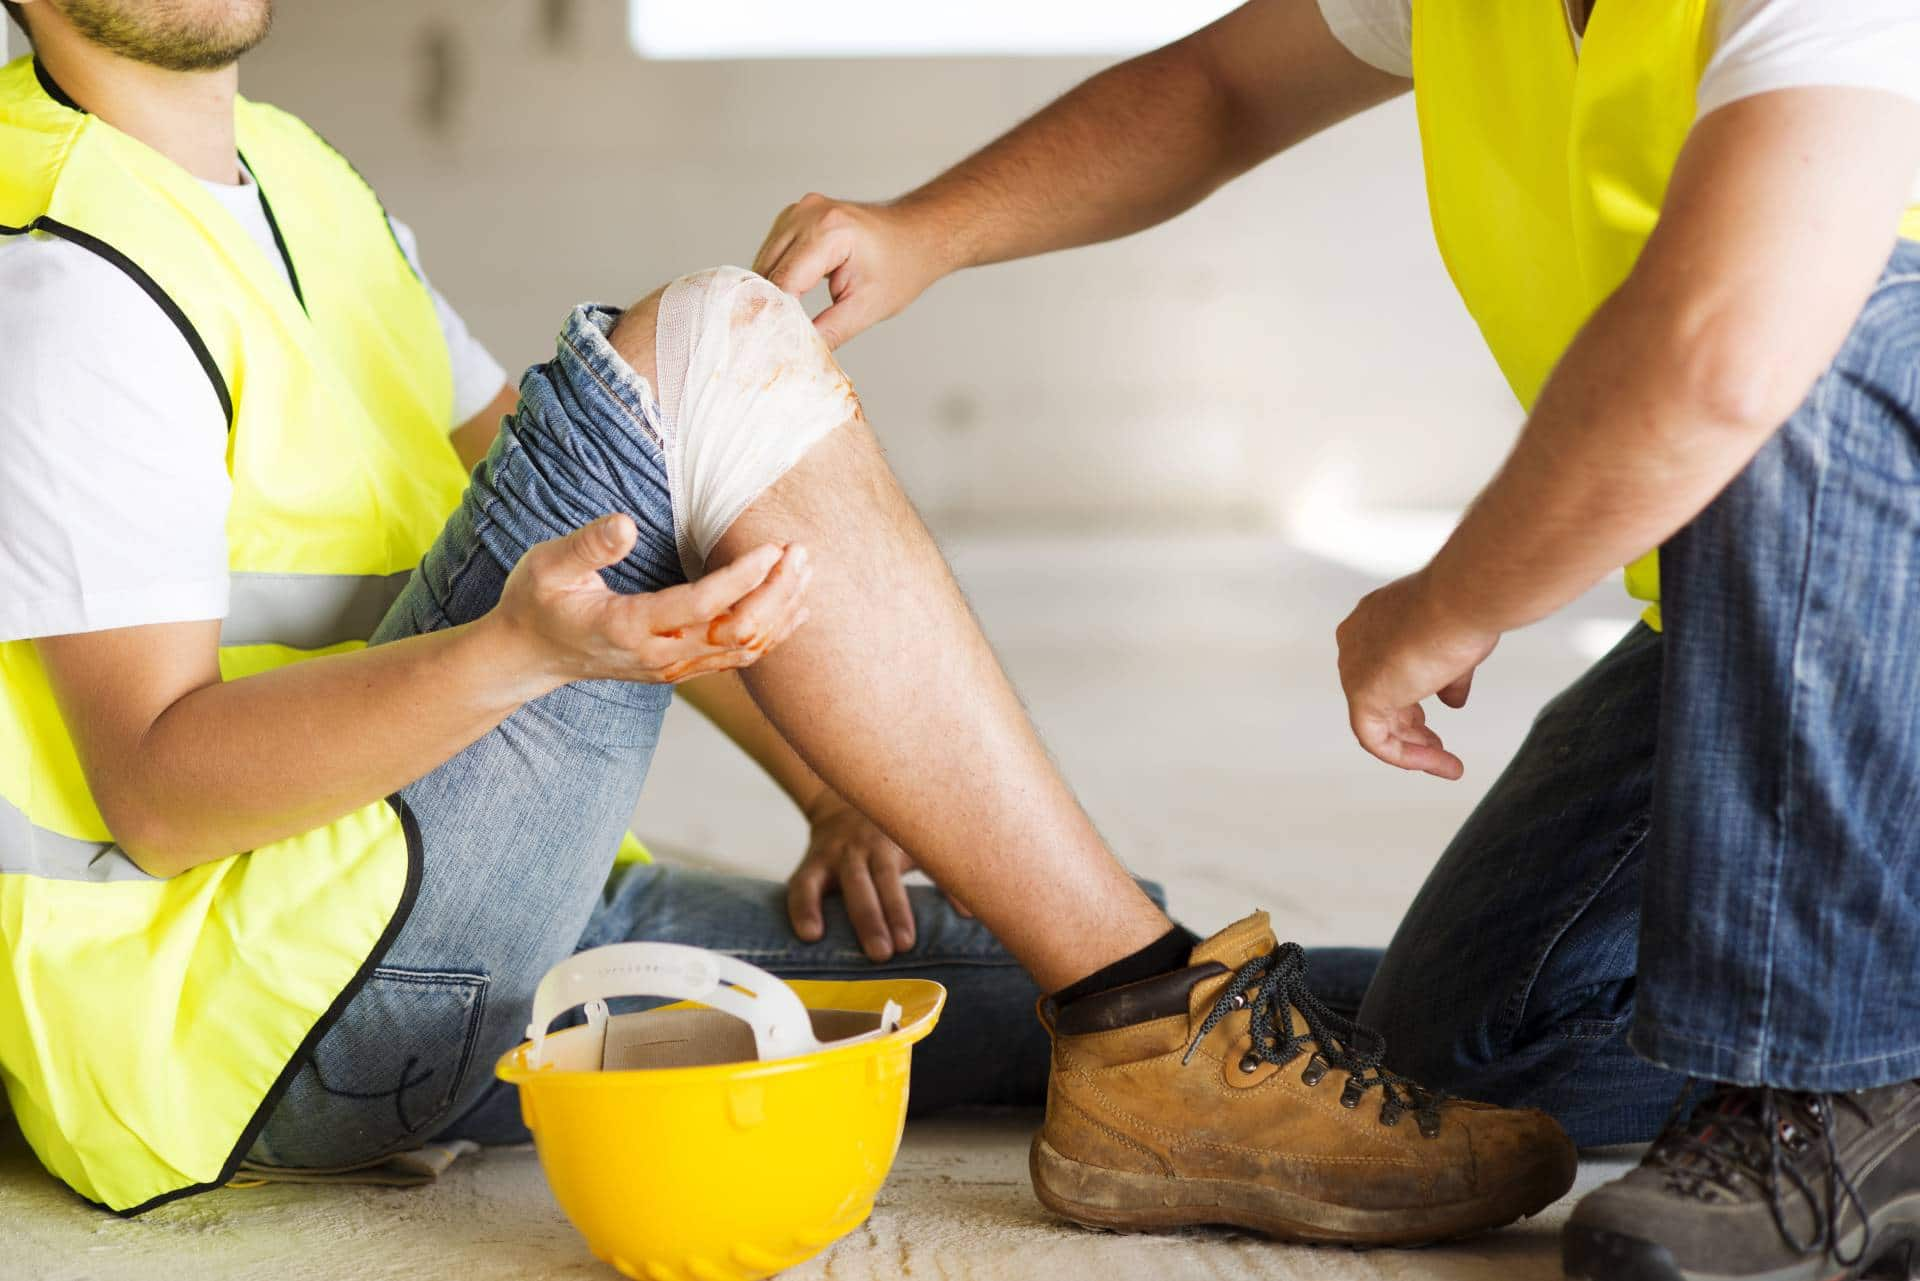 Injured on the job? Schedule a free consultation with our personal injury lawyers at the Angell Law Firm in Cartersville.